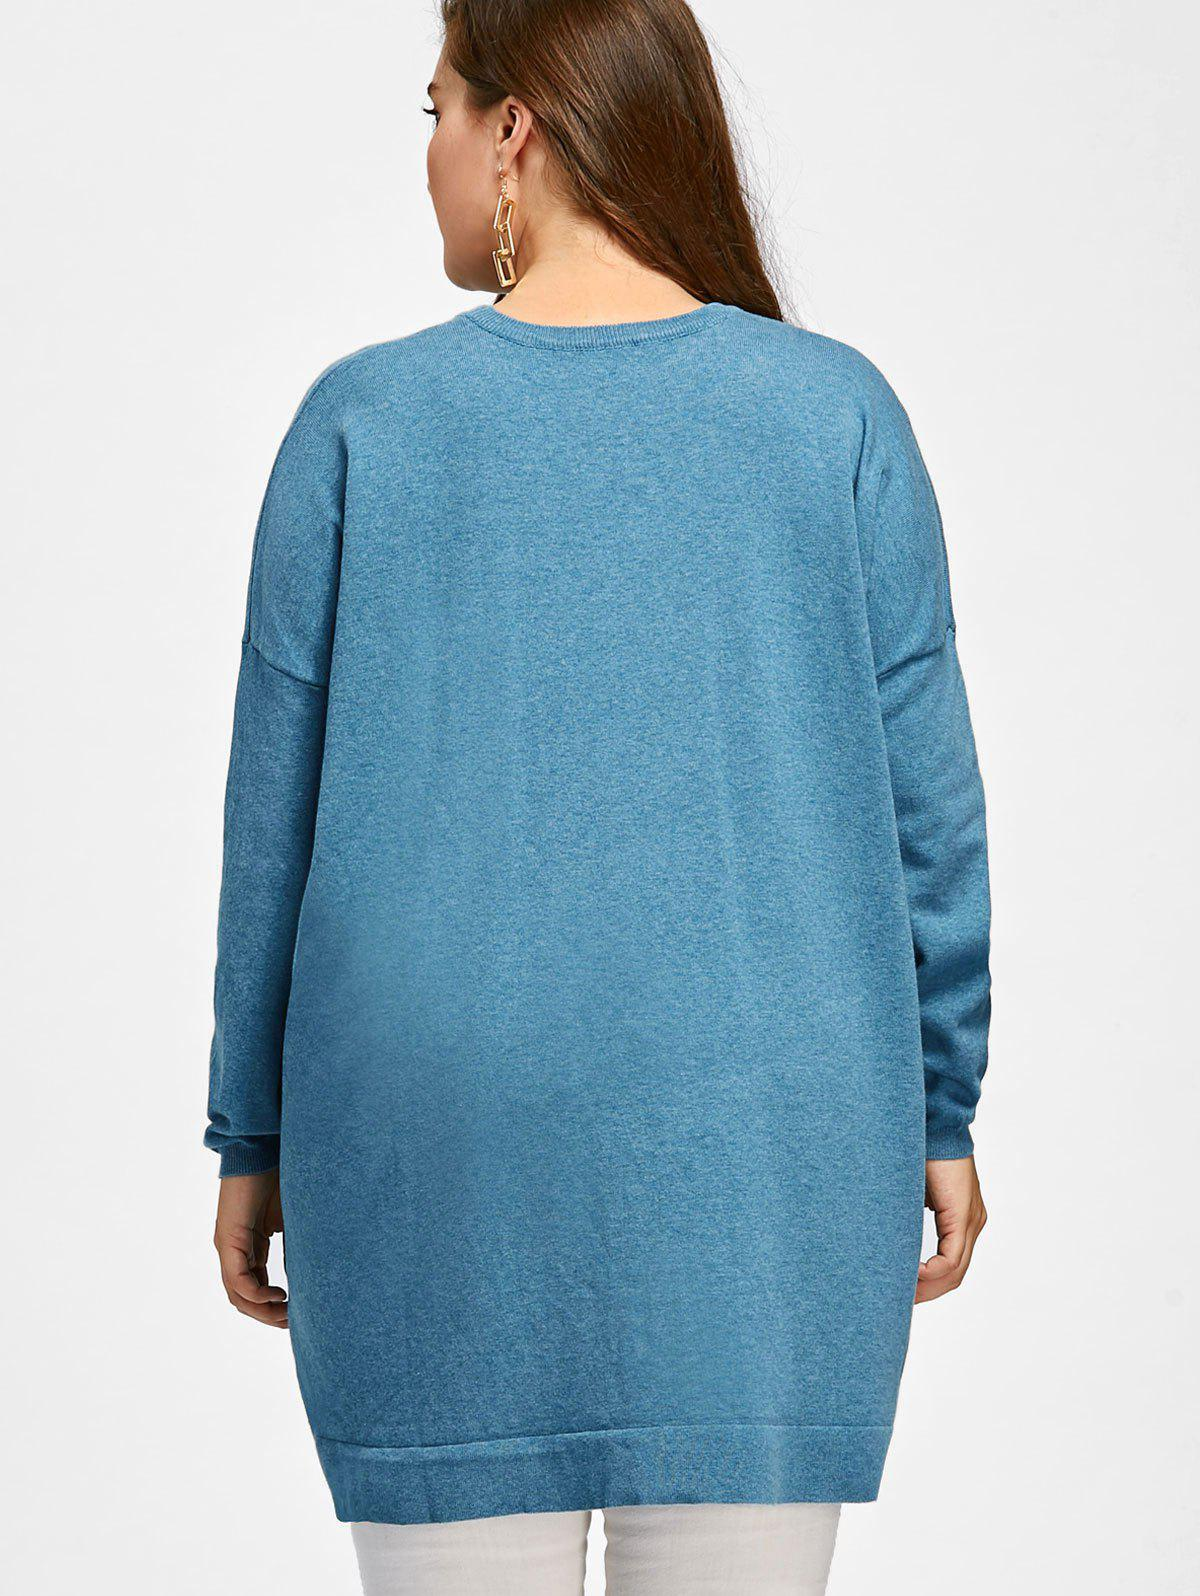 Tunics Champion the latest trends and cool chic with our plus size tunic tops from JD Williams. Perfect for figure-flattering and practicality, the tunic top is an excellent addition to any woman's collection.